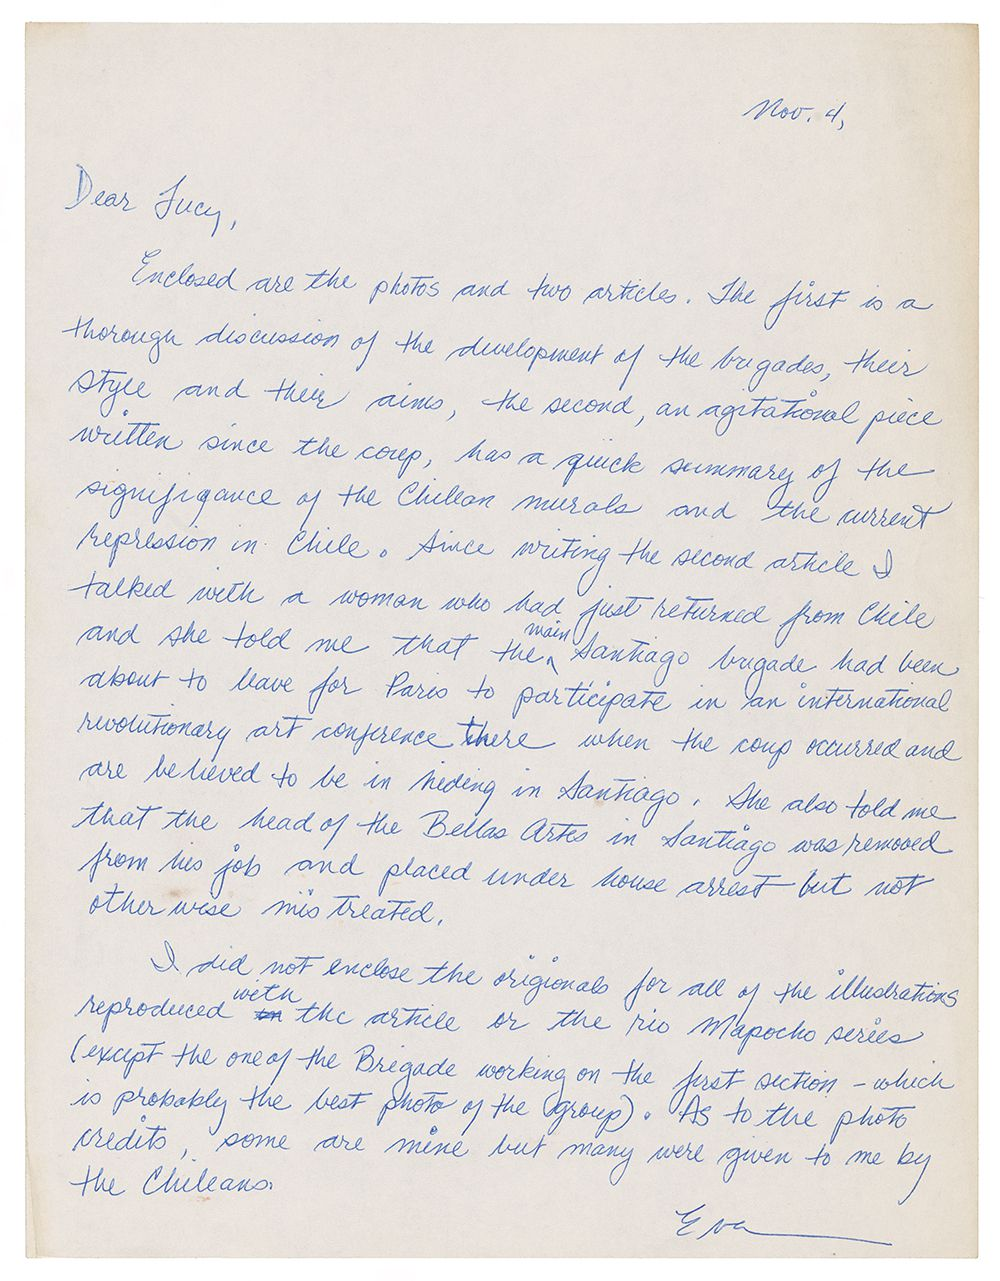 Letter written to Lucy Lippard by Eva Cockcroft, November 4, 1973